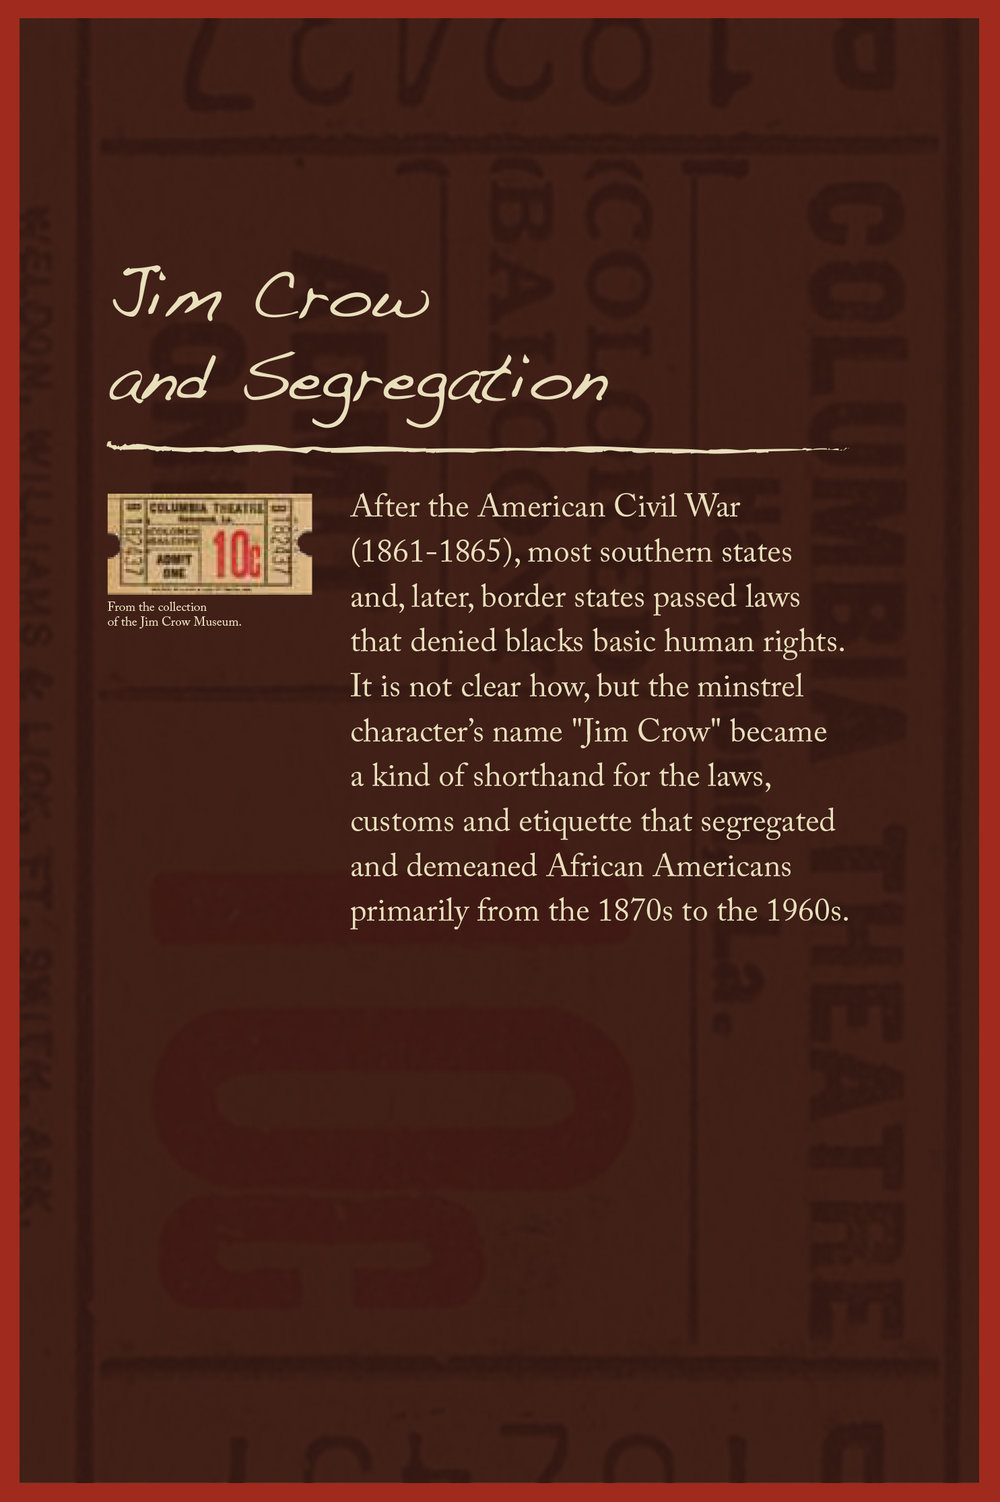 JIm Crow and Segregation.jpg